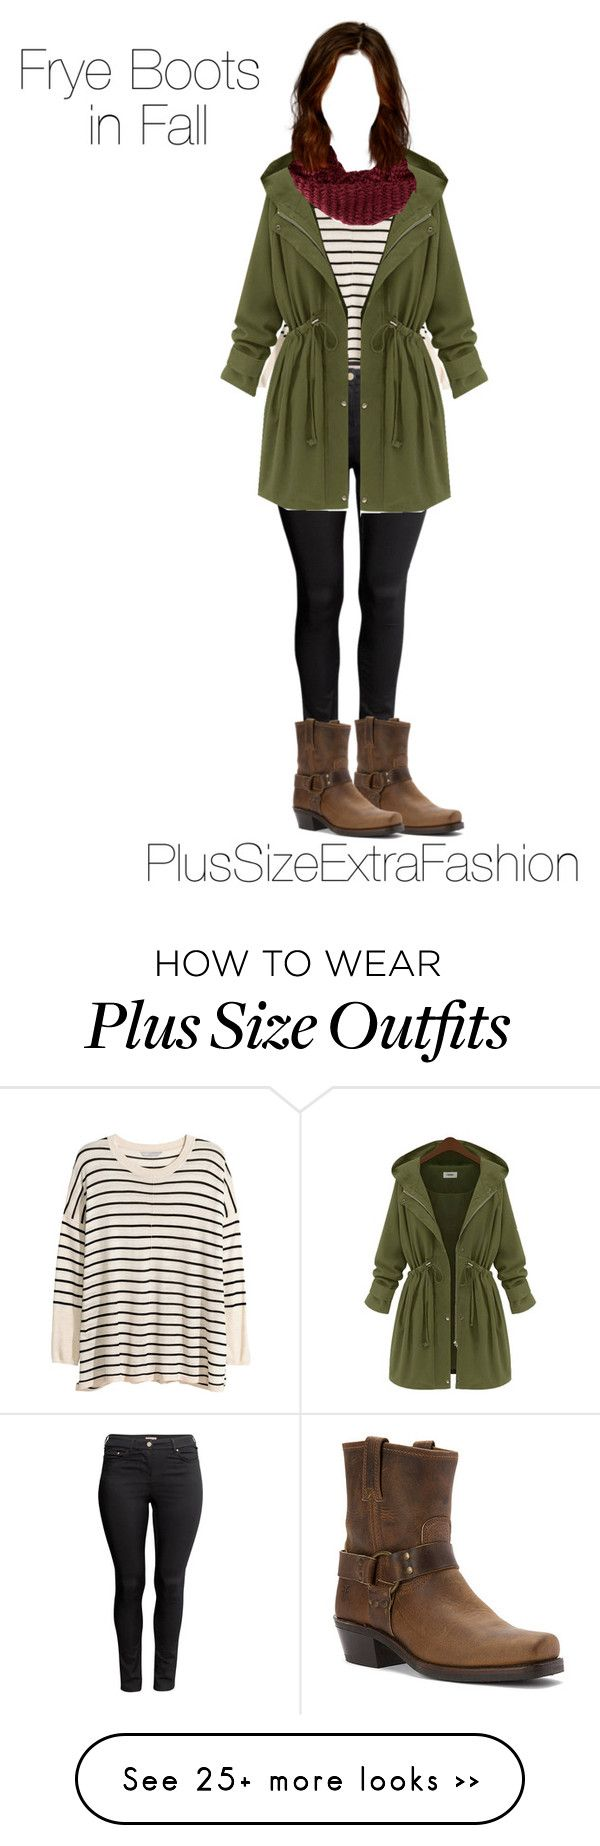 """""""Fall Outfit ft. Frye Boots Plus Size Outfit"""" by plussizeextrafashion on Polyvore featuring H&M, Frye, TOMS, plussize, fall2015 and plussizeextrafashion"""